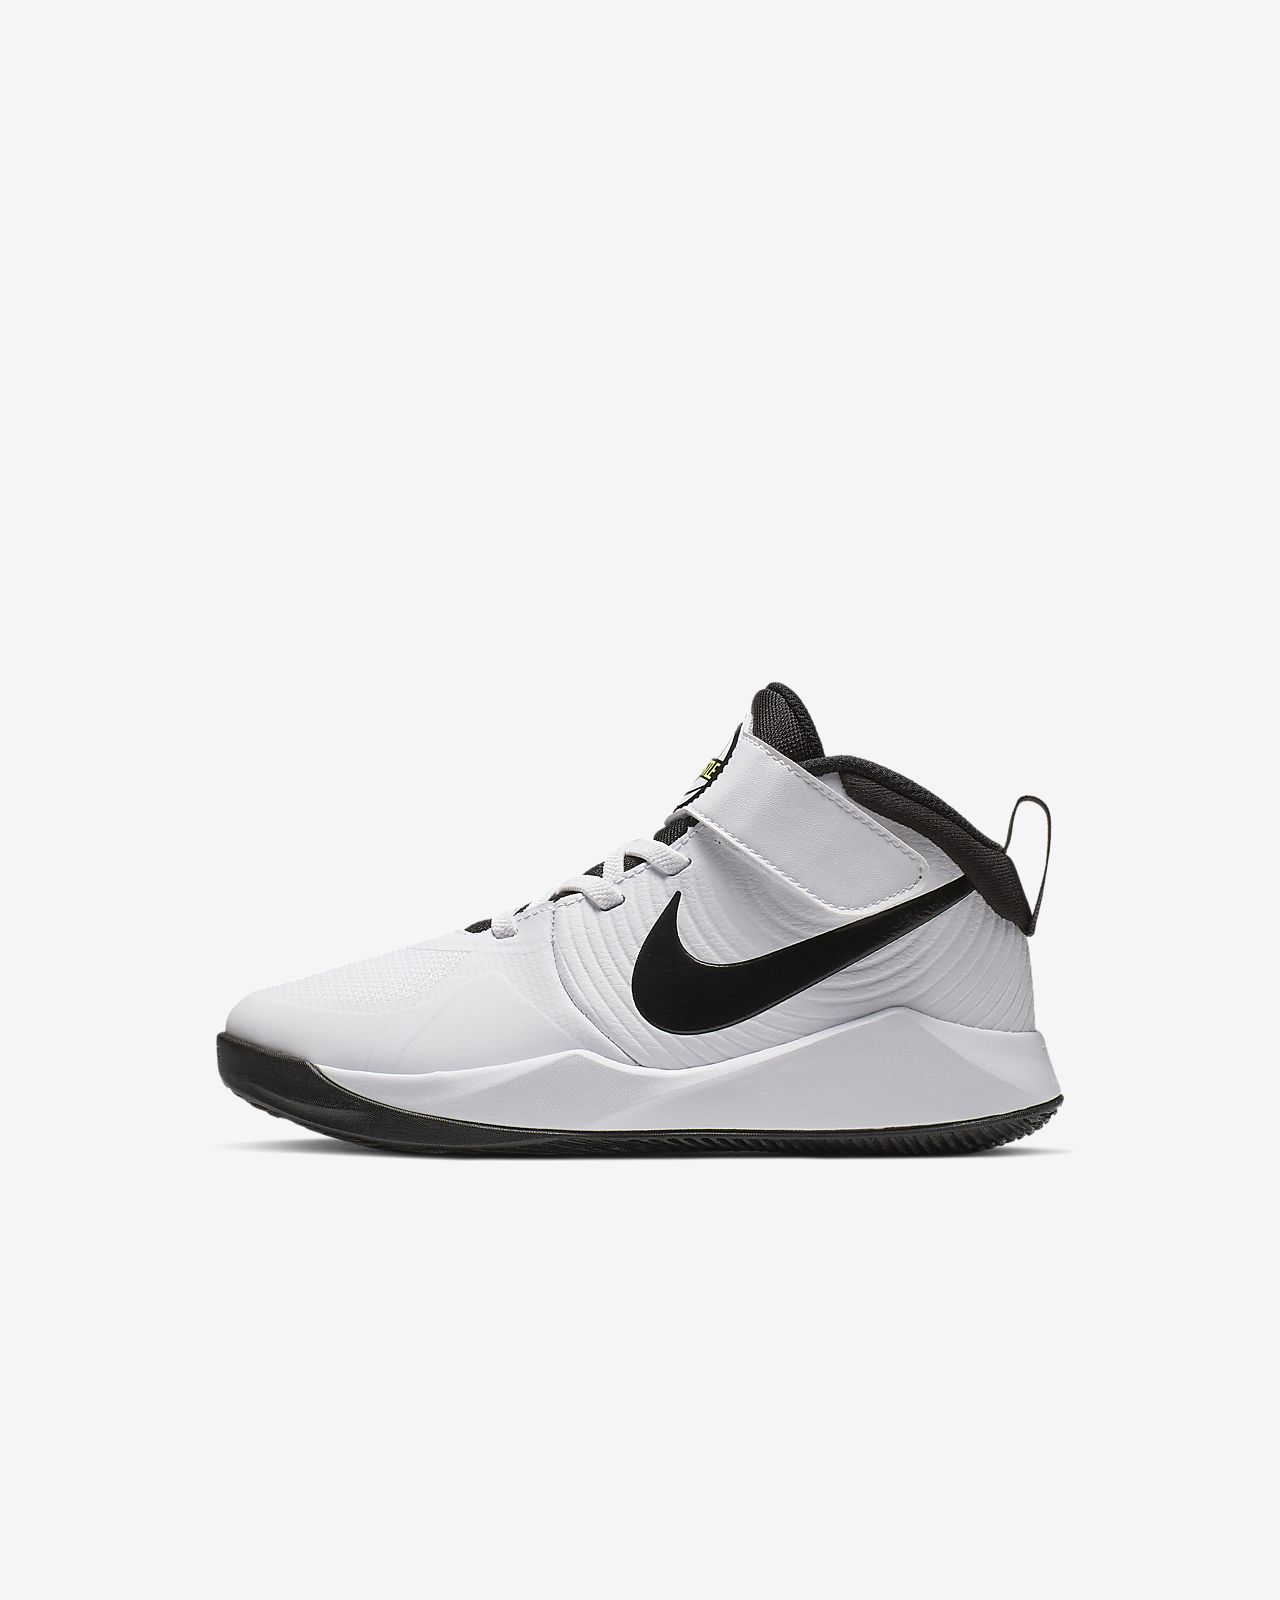 Nike Performance Team Hustle D 7 Chaussures De Basket